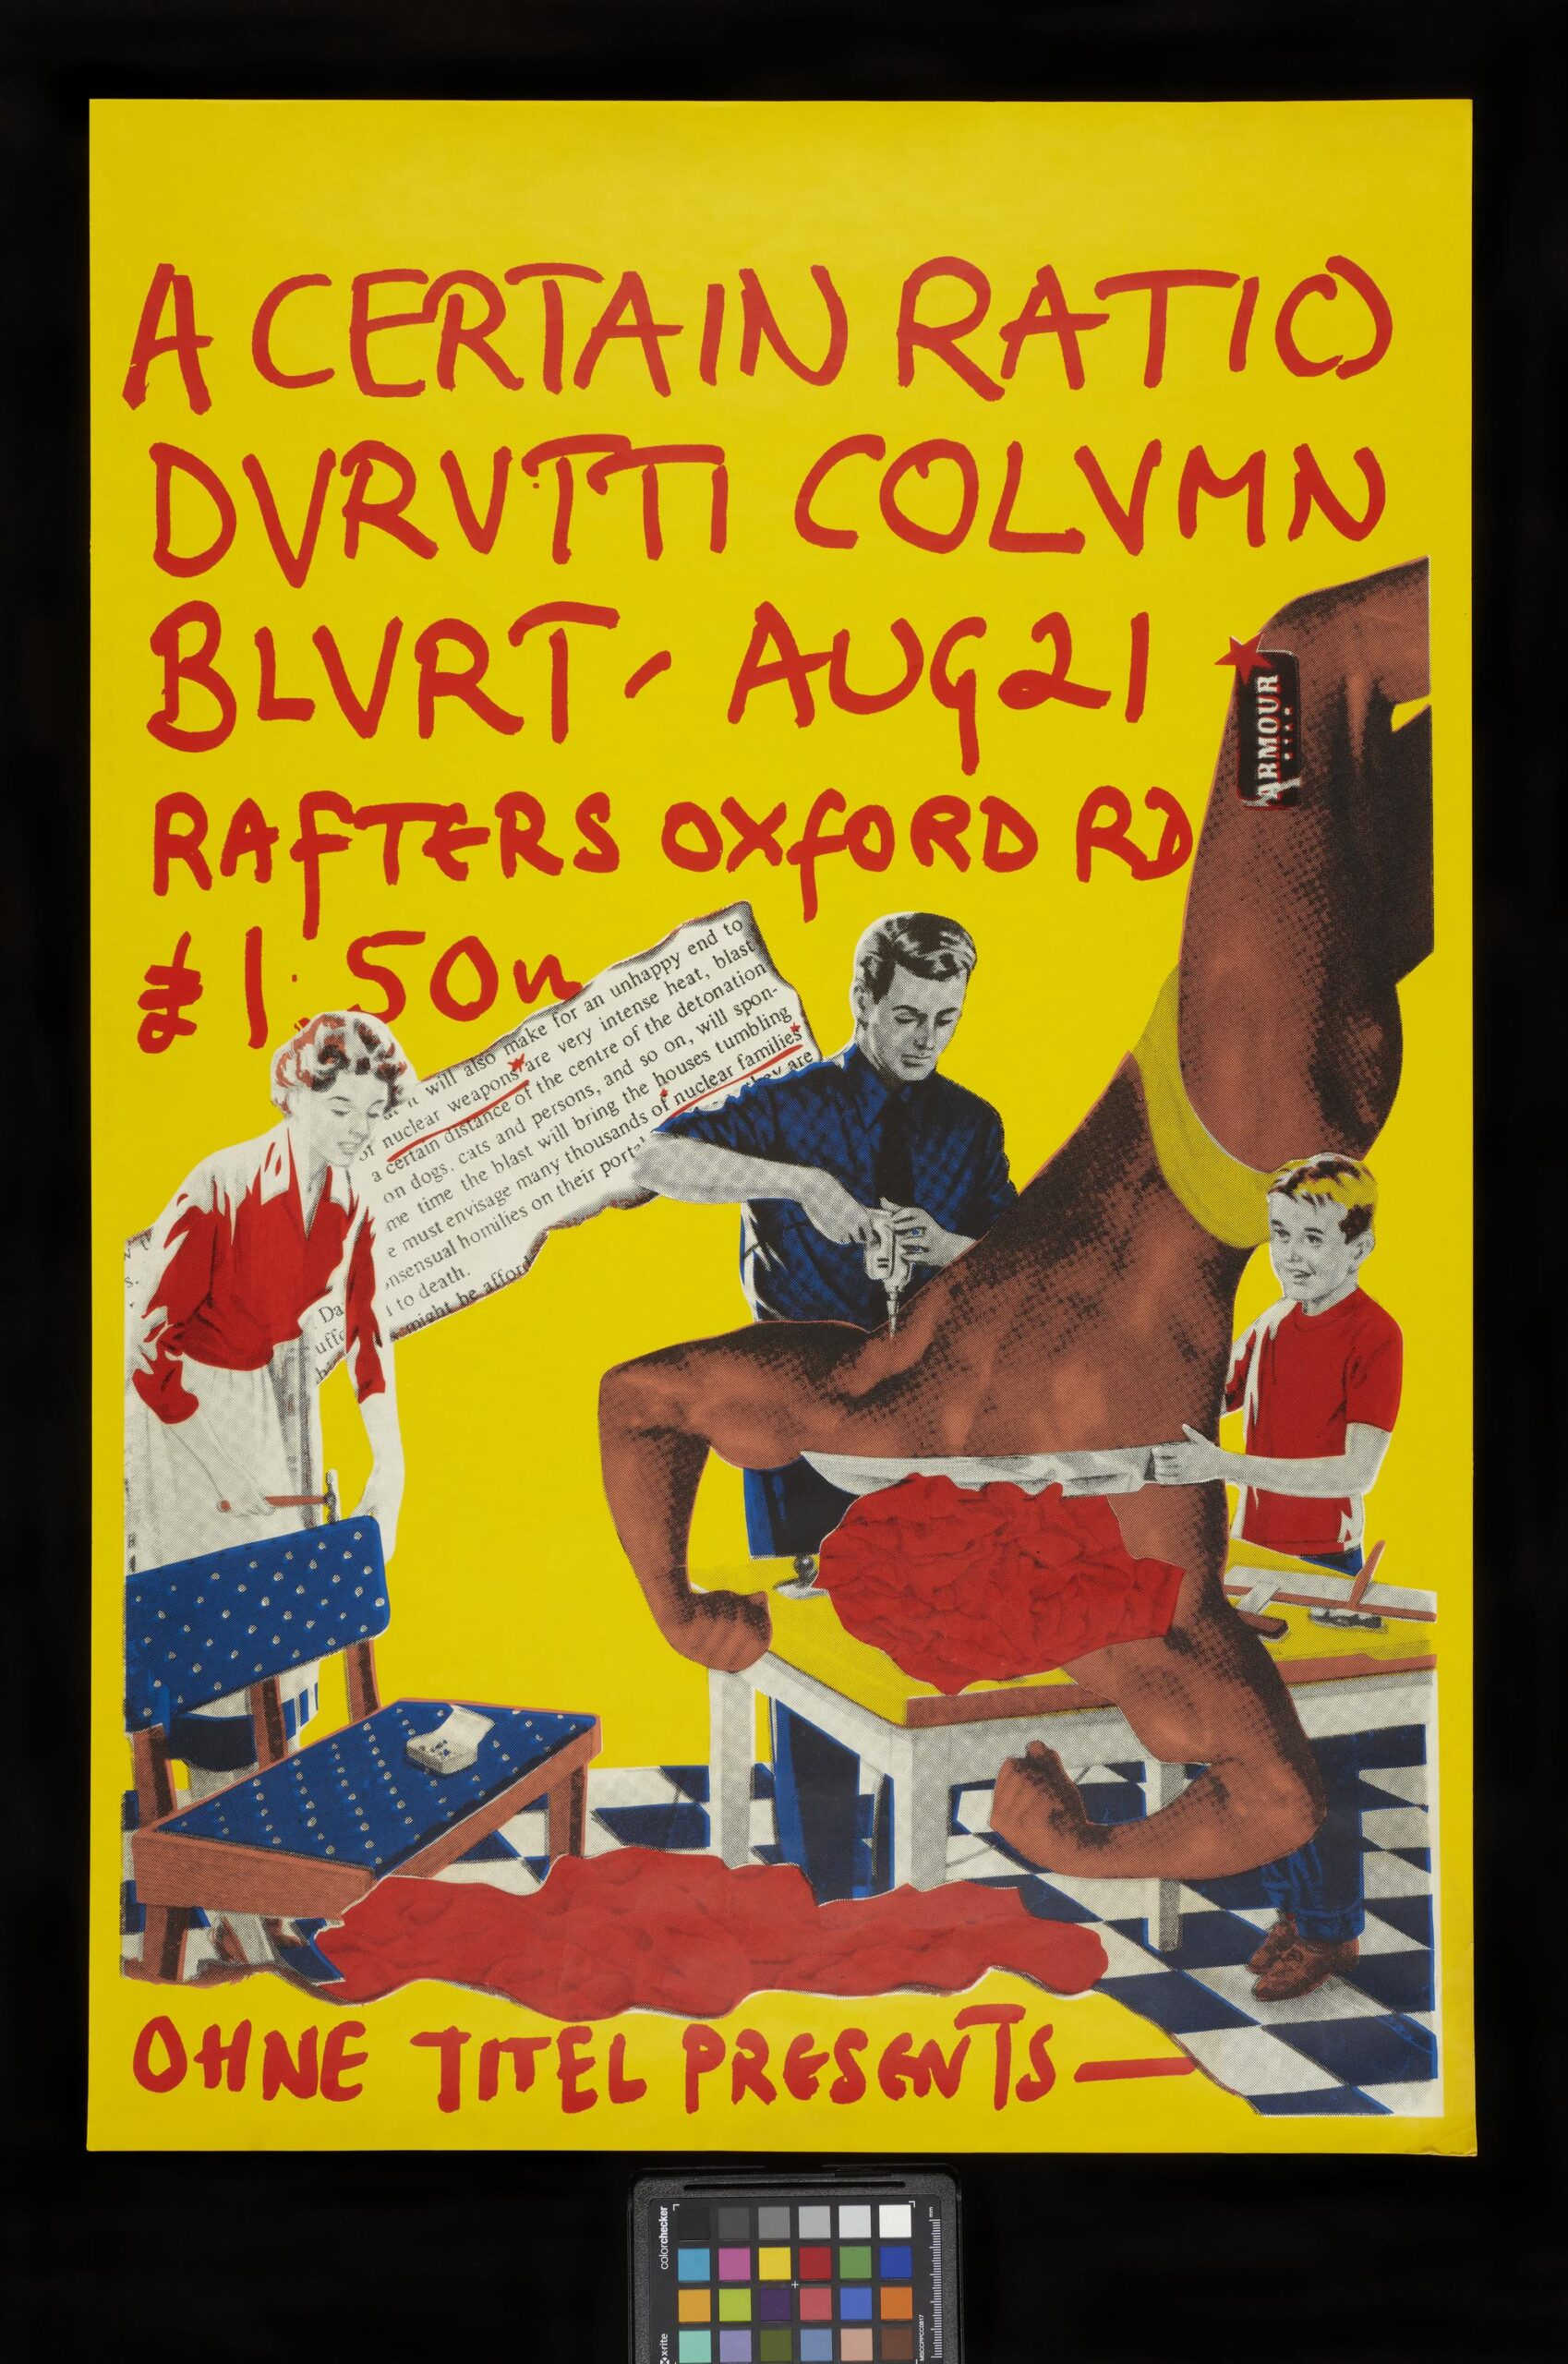 ACR - Durutti Column - Blurt - Rafters concert poster. Poster to promote A Certain Ratio and Durutti Column show at Rafters, Manchester, August 21st, supported by Blurt, 1980. Copyright Contact Details: © The Board of Trustees of the Science Museum Collection/Owner: Benedict and Laura Gretton Credit Line: Science Museum Group/ Lent by Benedict Gretton, Laura Gretton and Lesley Gilbert